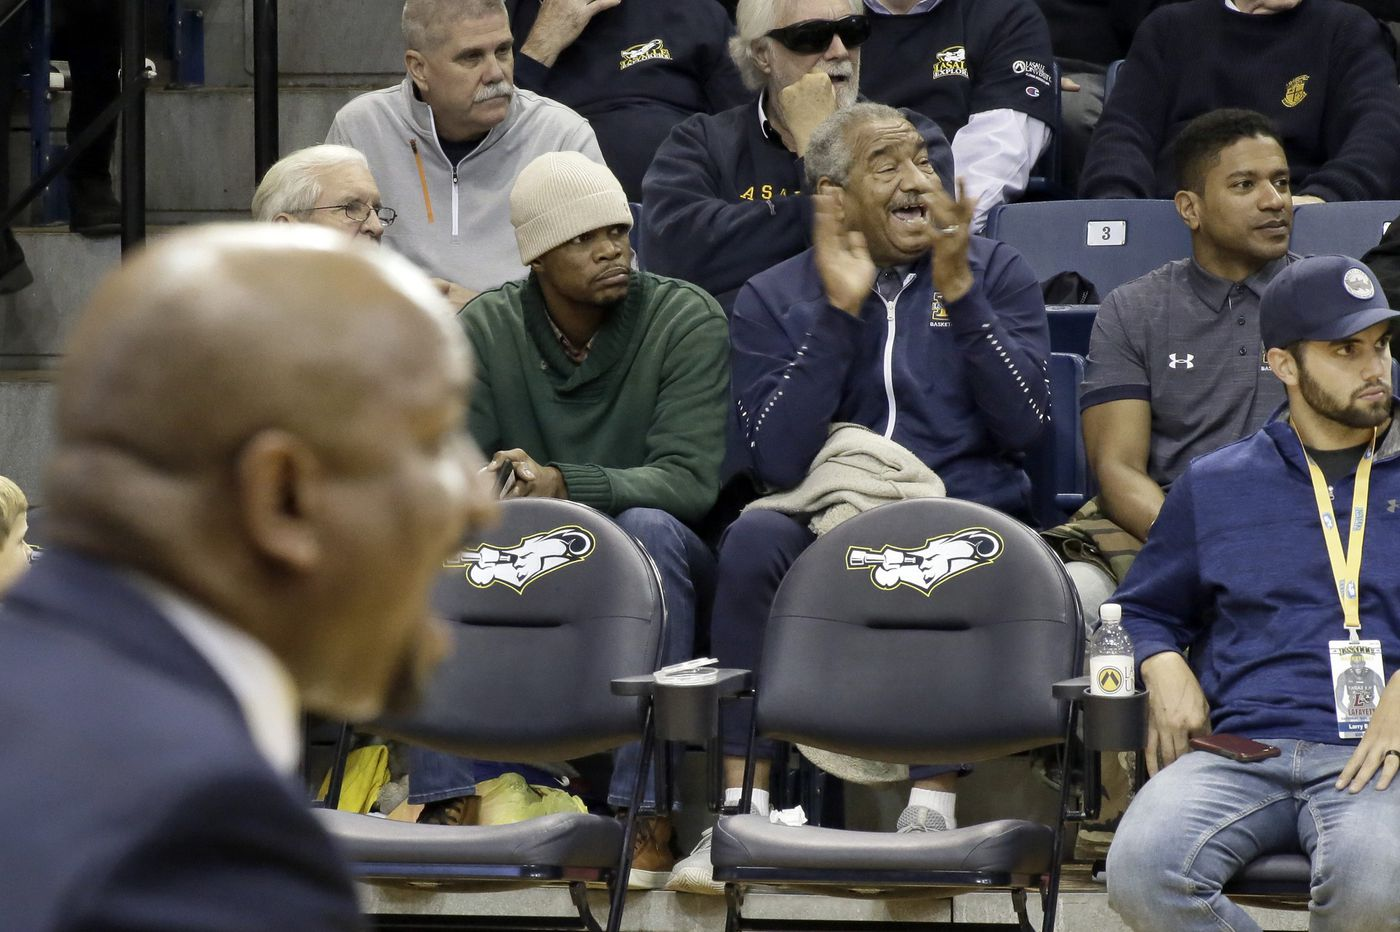 La Salle coach Ashley Howard and his father Mo, and a conversation about pain | Mike Jensen